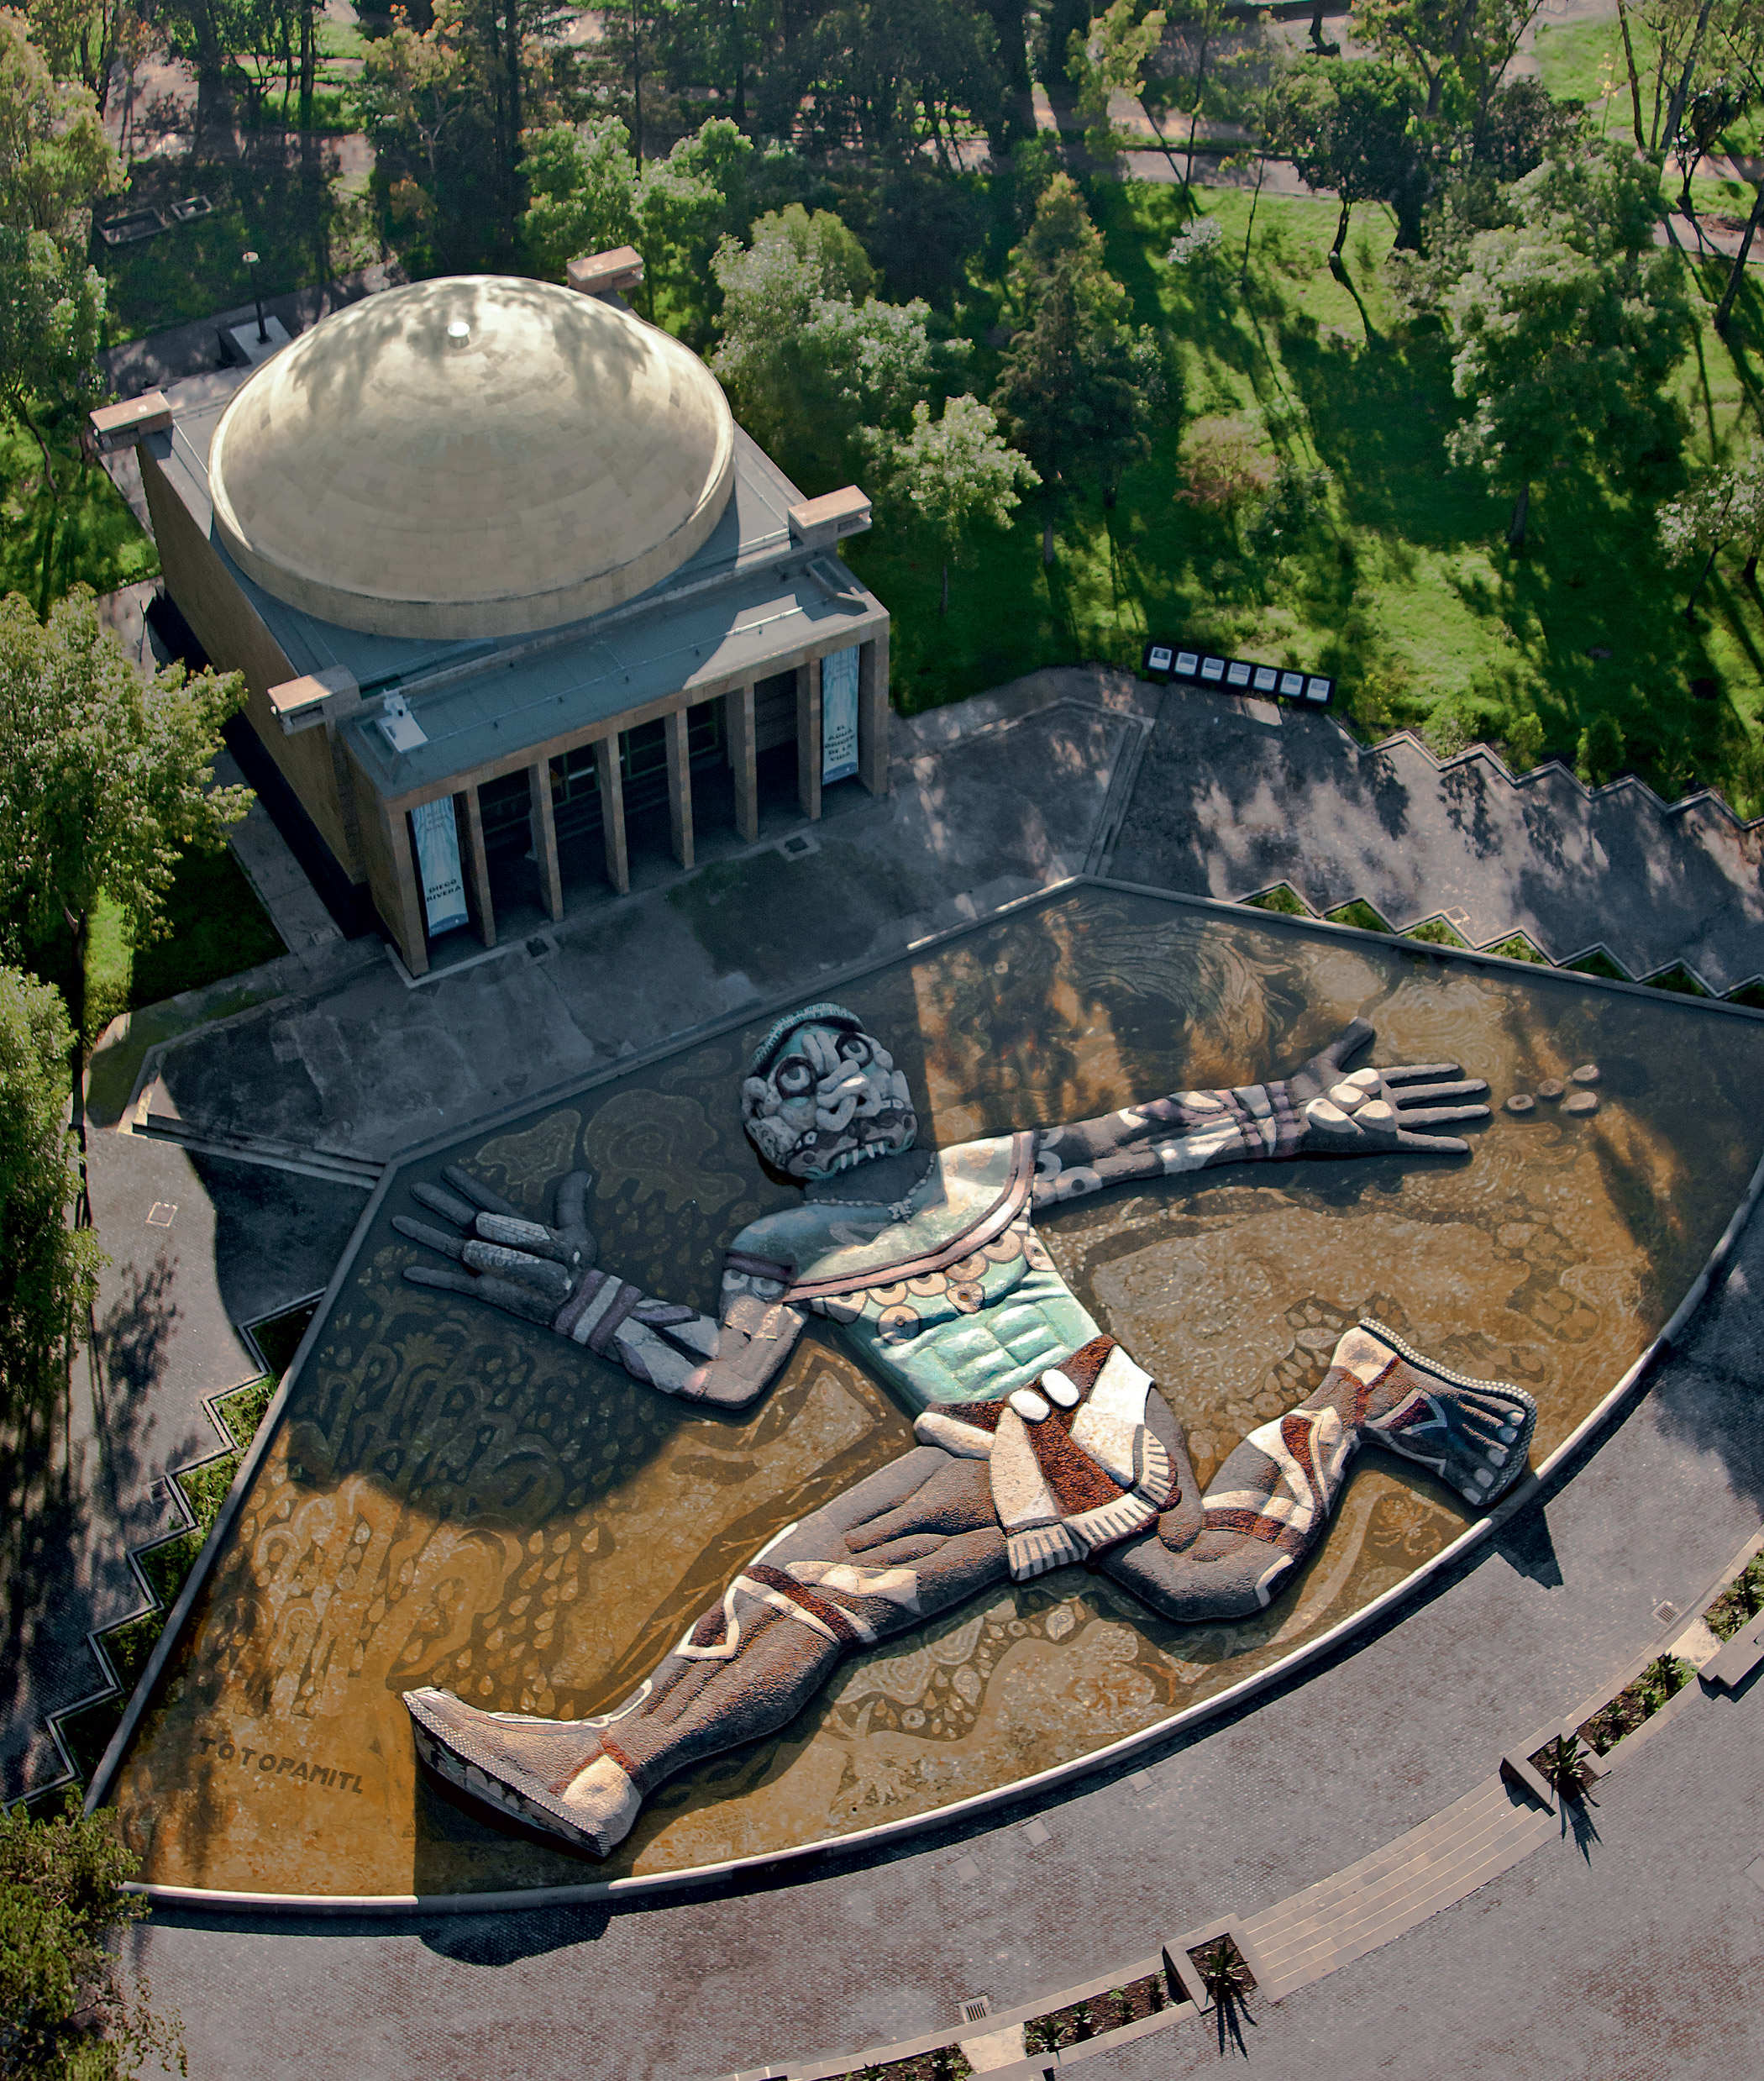 Mexico, Chapultepec                               Park: is an oasis that offers opportunities for leisure activities for residents and tourists alike, but planning and vision are needed for the Park to continue to be enjoyed by the public.